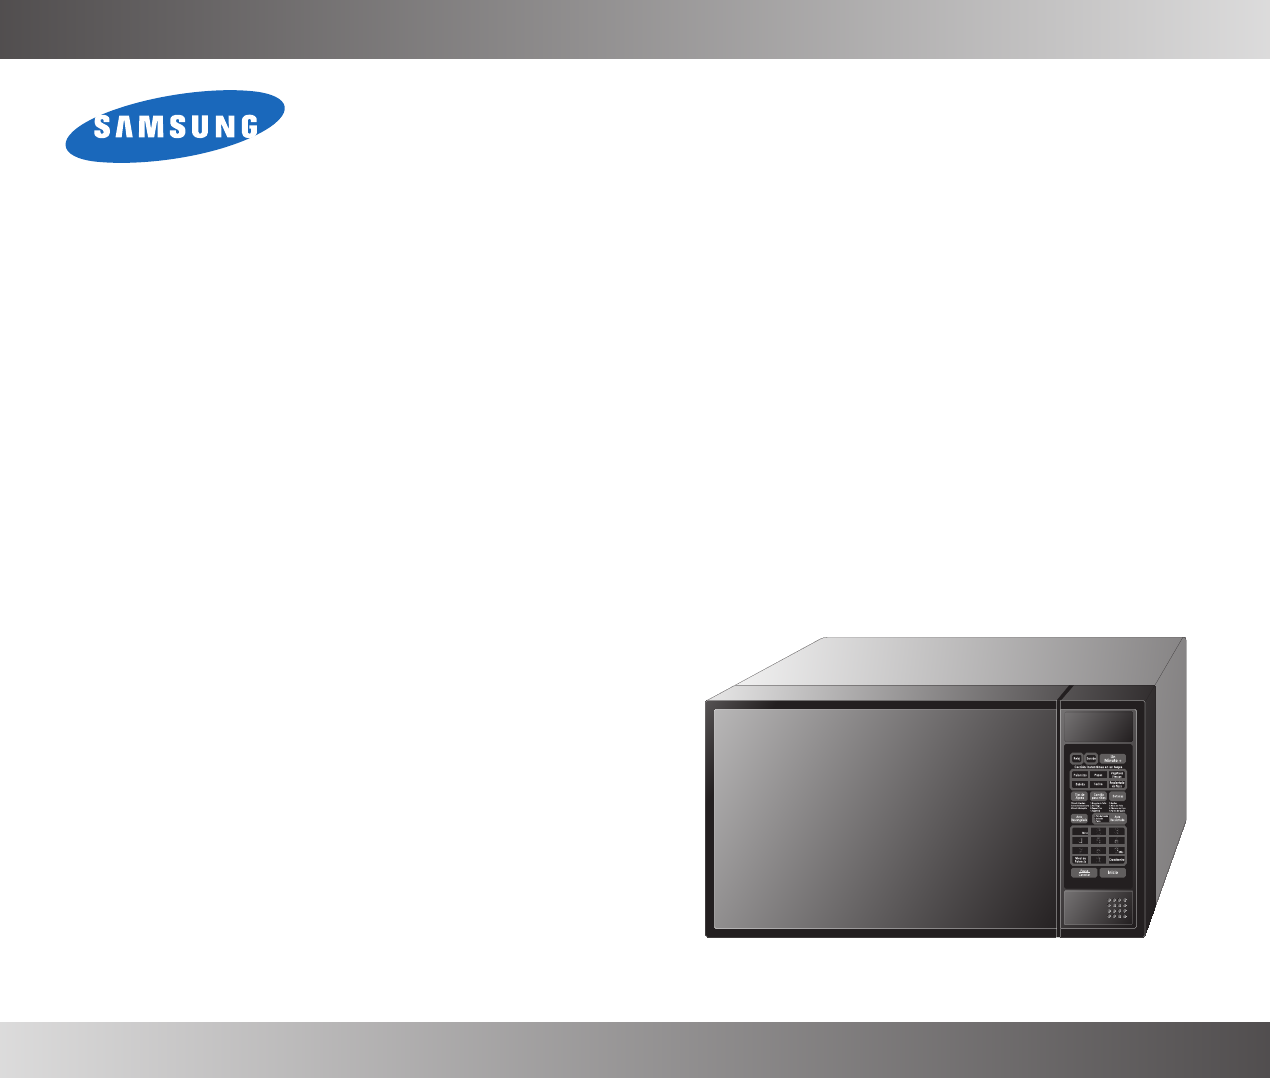 Samsung Microwave Me21h706mqs Wiring Diagram Diagrams For Oven 100 Manuals 5th731n User Ge Refrigerator